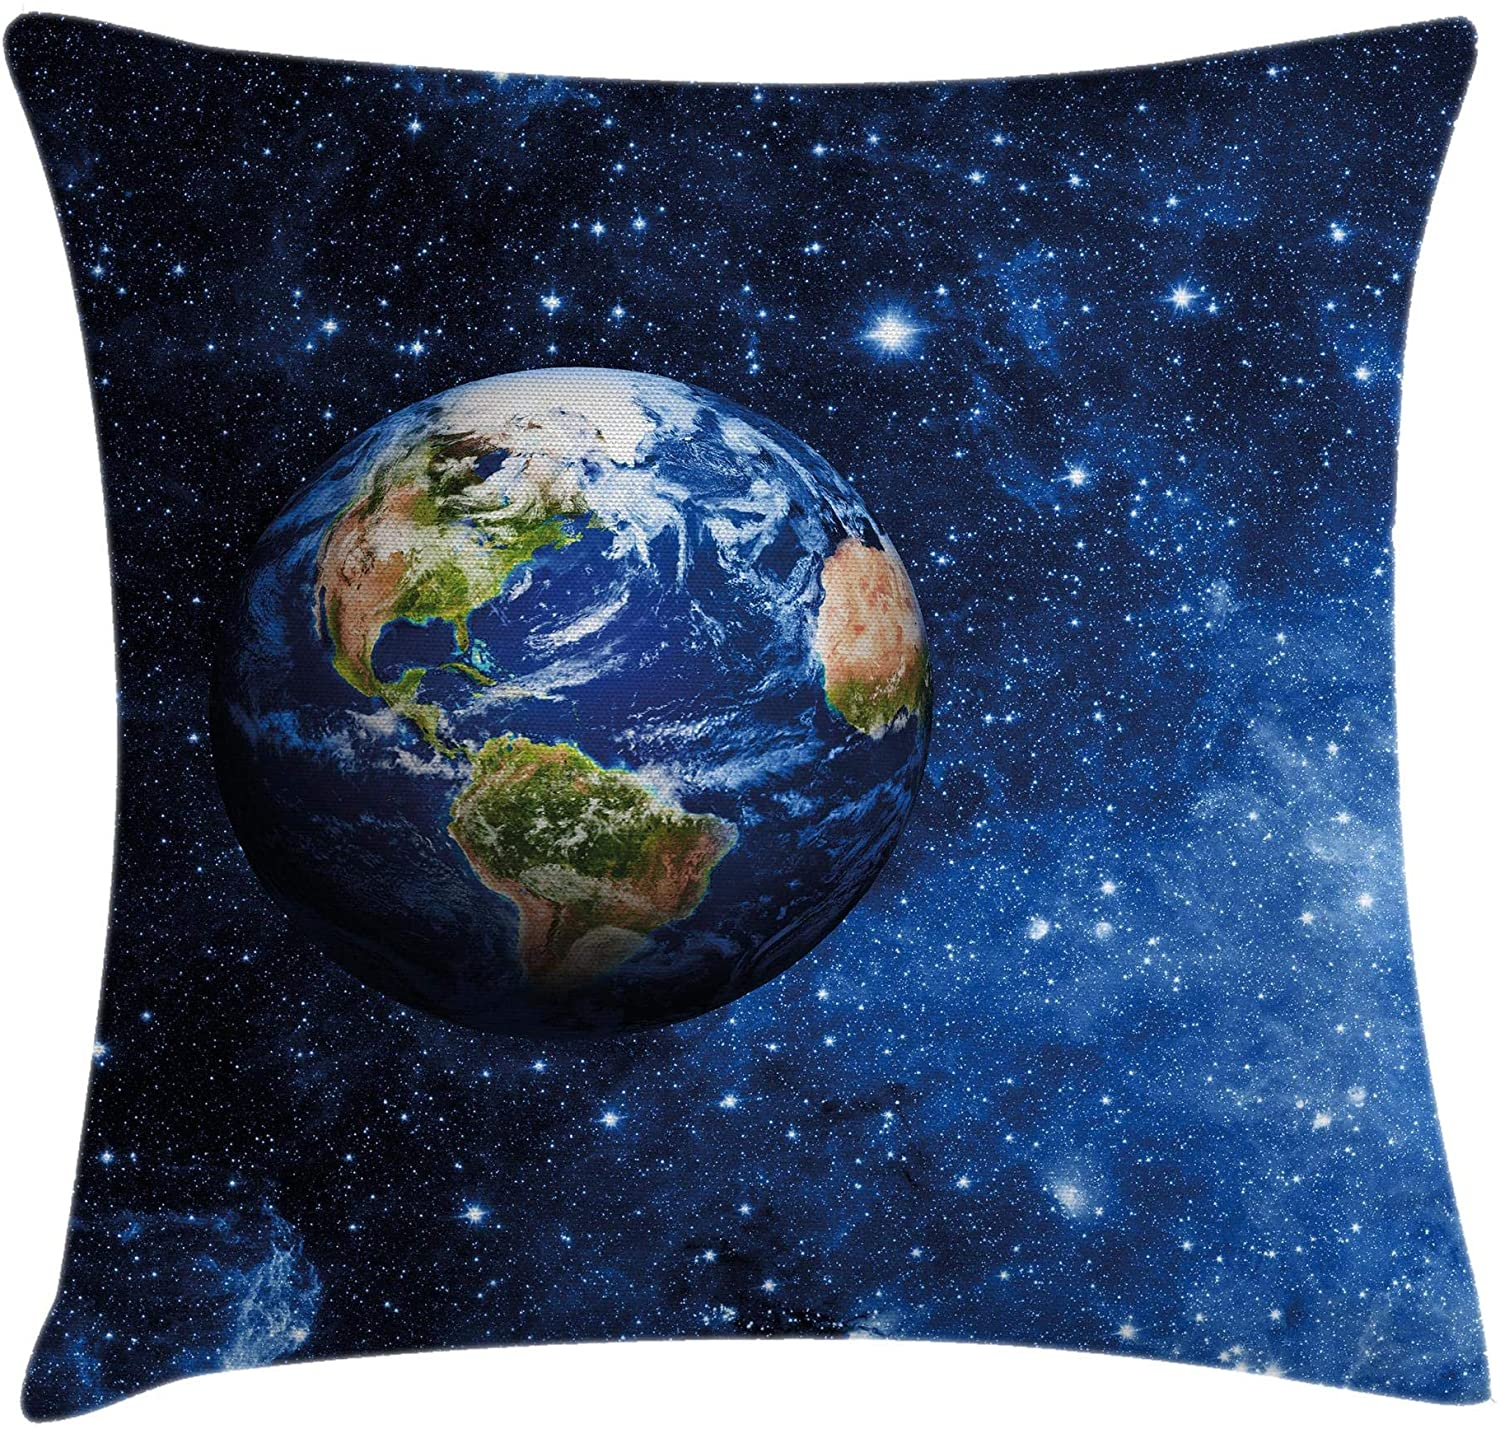 Ambesonne Space Throw Pillow Cushion Cover, Outer View of Planet Earth in Solar System with Stars Life on Globe Themed Image, Decorative Square Accent Pillow Case, 16 X 16, Blue Green